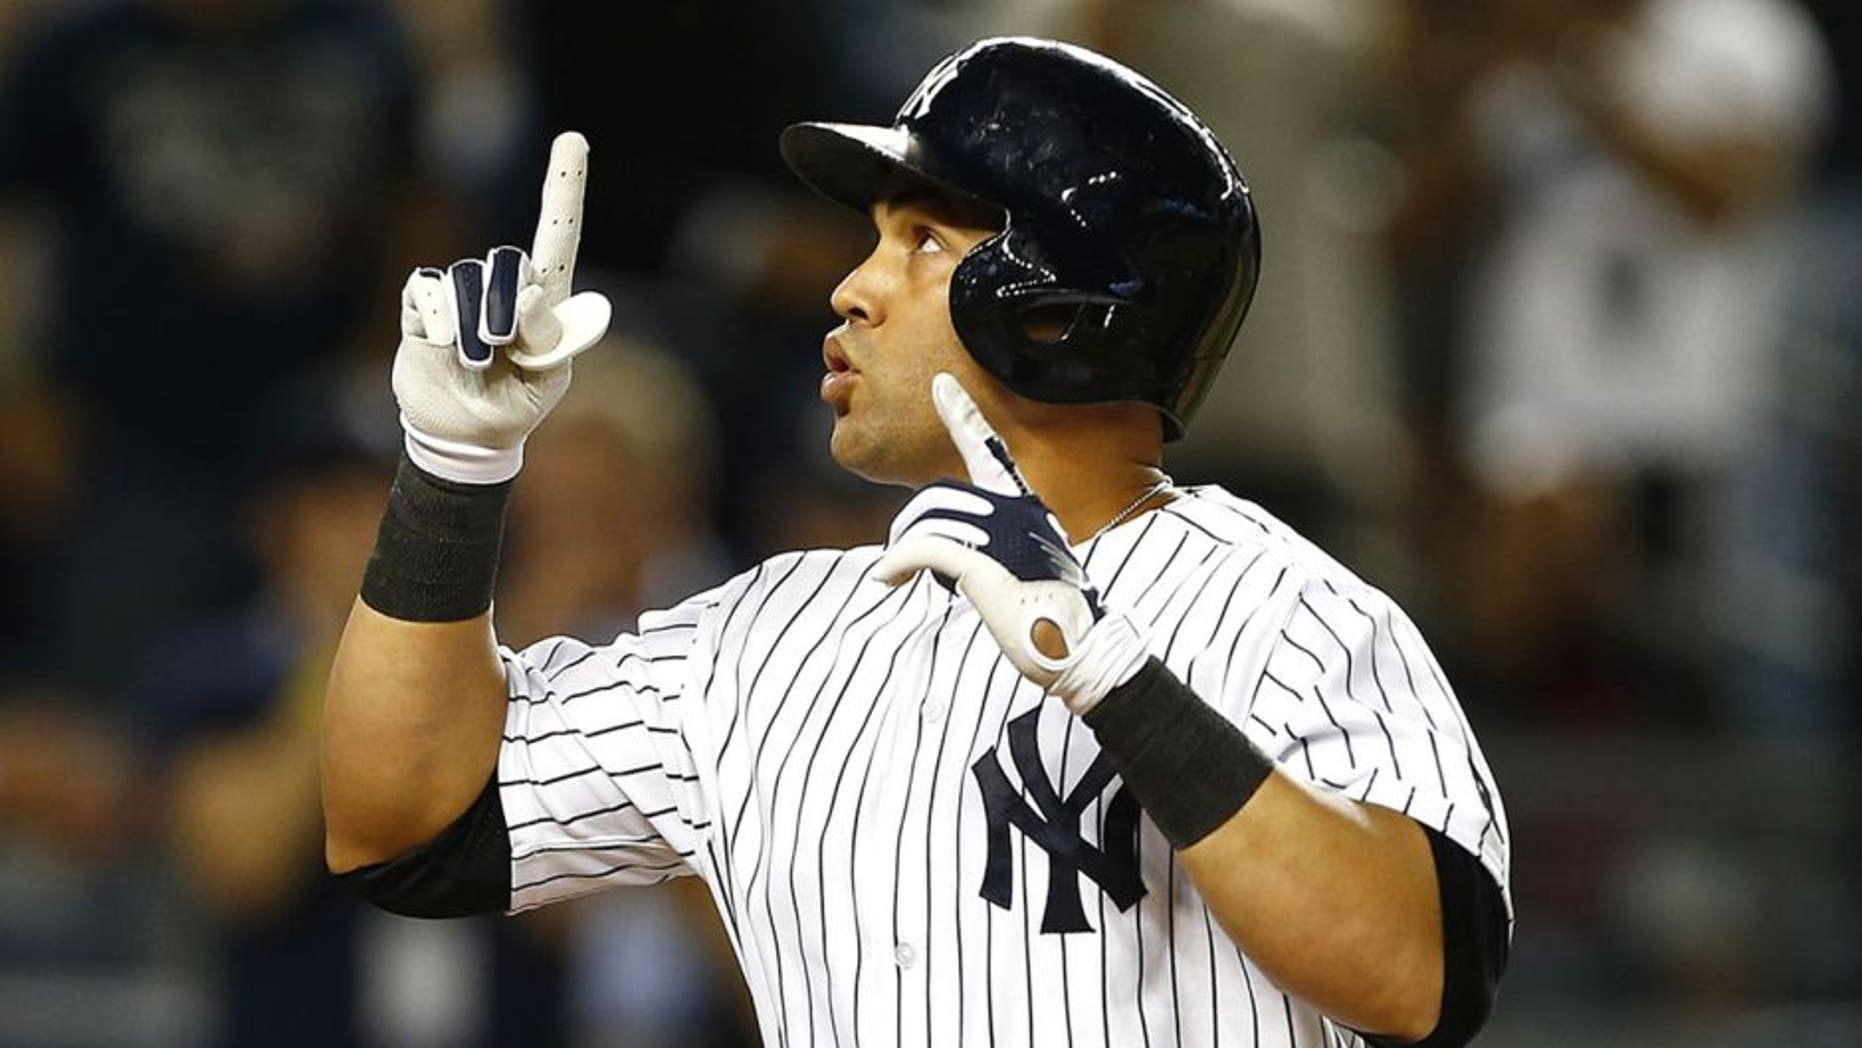 NEW YORK, NY - SEPTEMBER 24: Carlos Beltran #36 of the New York Yankees gestures after hitting a three-run home run against the Chicago White Sox during the third inning of a MLB baseball game at Yankee Stadium on September 24, 2015 in the Bronx borough of New York City. The Yankees defeated the White Sox 3-2. (Photo by Rich Schultz/Getty Images)